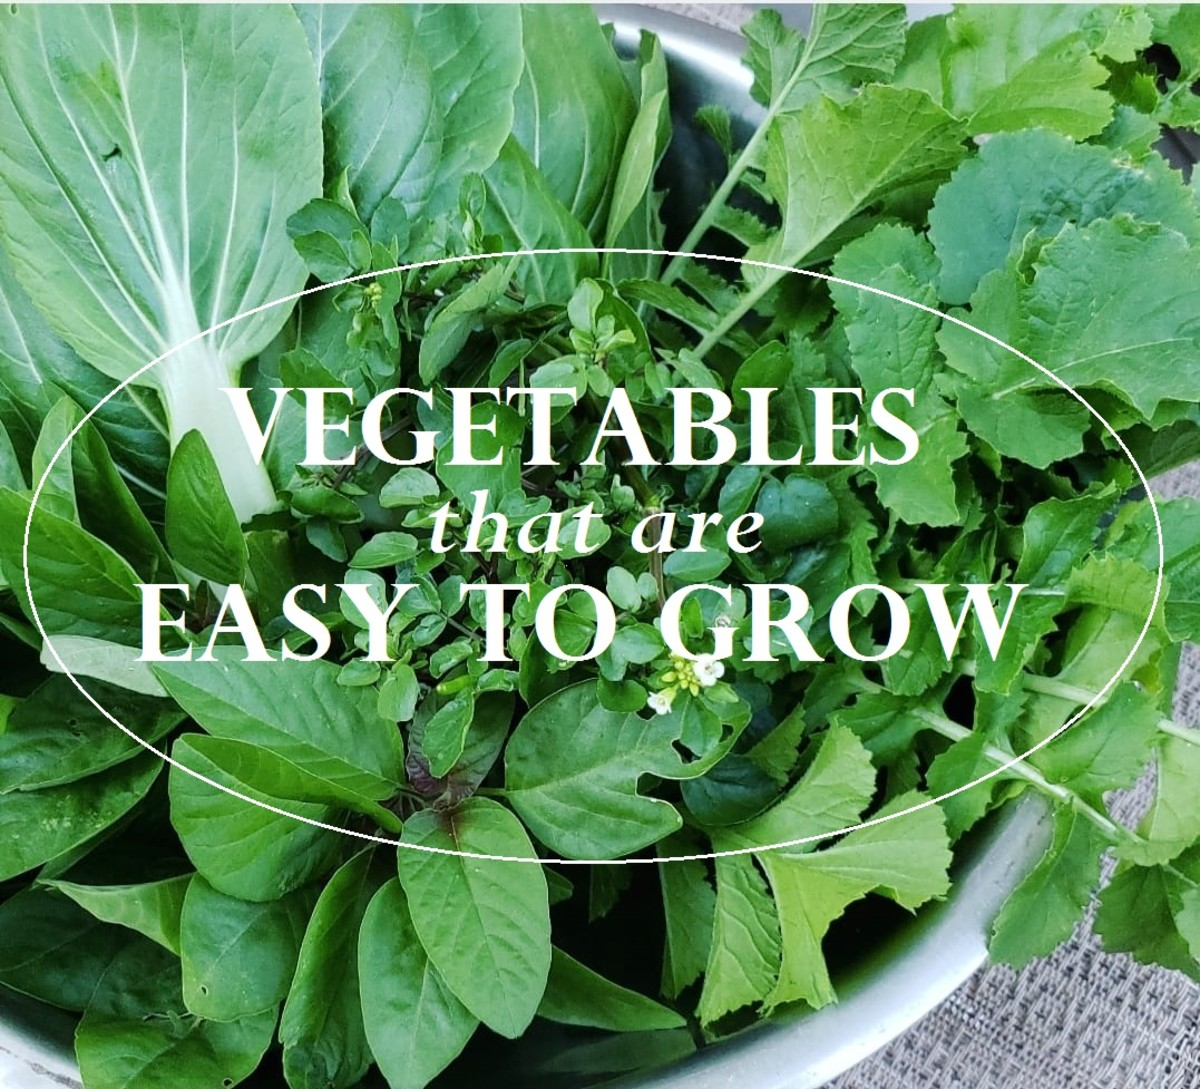 Have fun and enjoy some delicious homegrown food by starting these easy-to-grow veggies in your garden today.